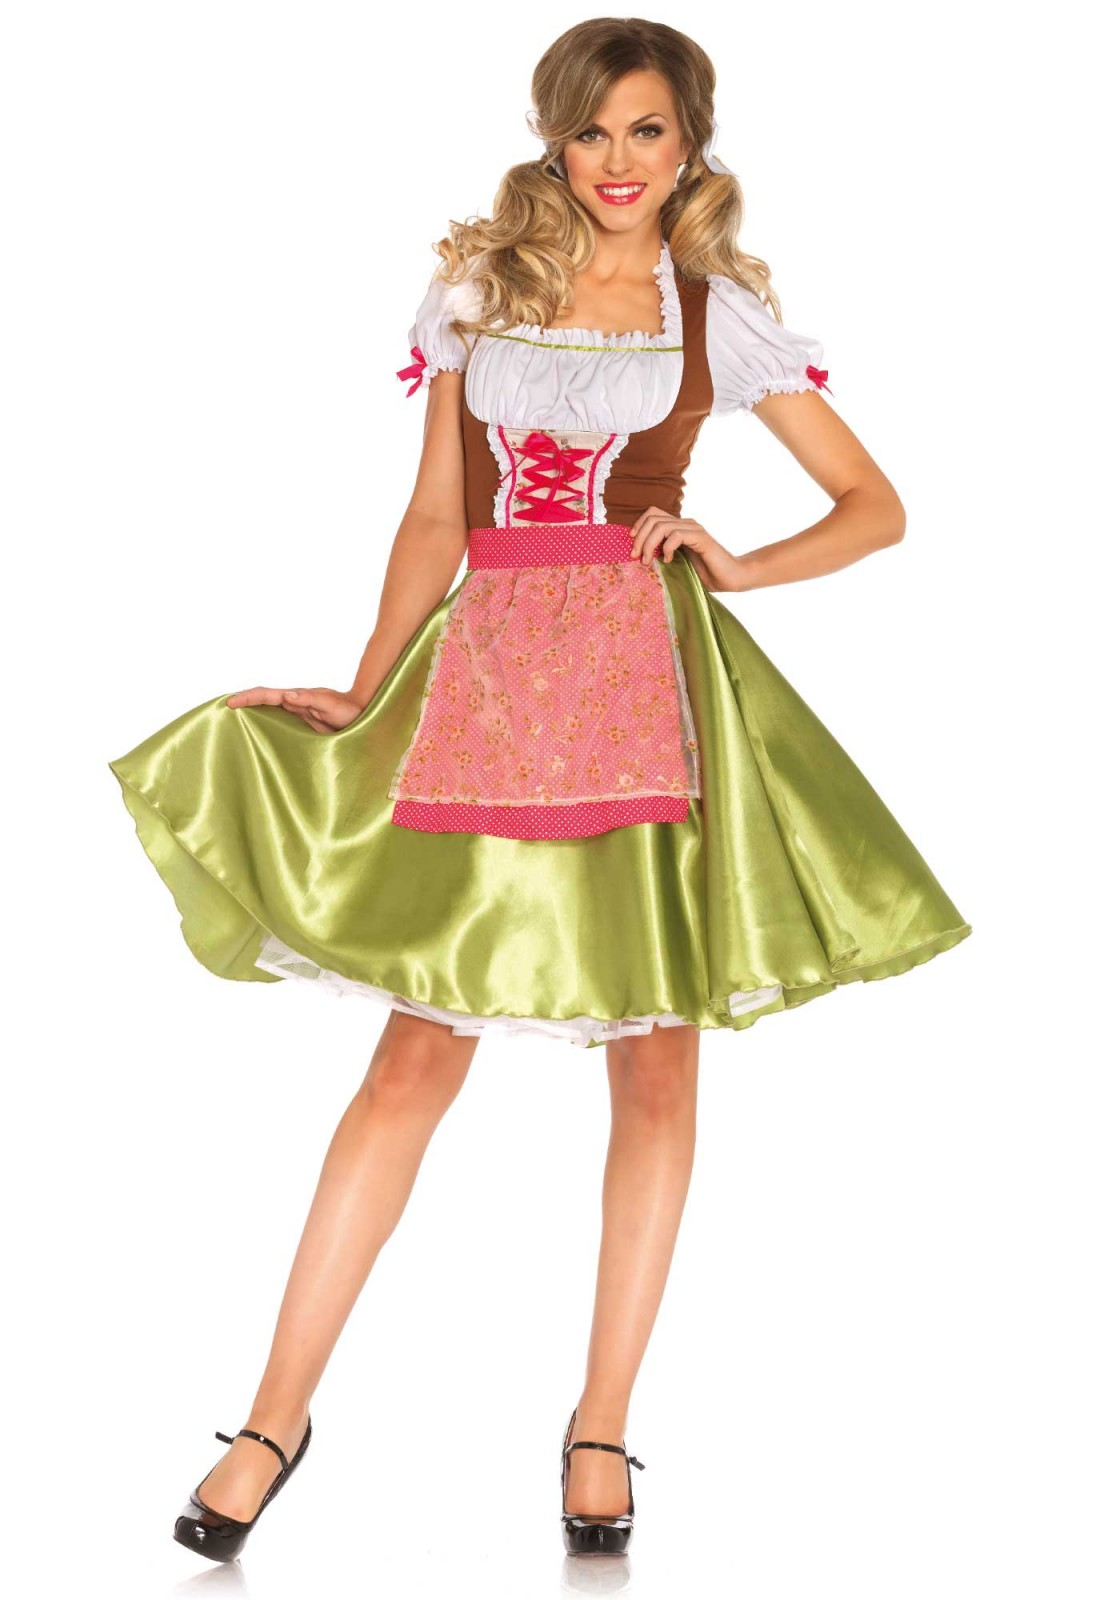 This costume is perfect for beerfest like oktoberfest or Apres Ski. This 2PC Heidi costume includes a knee length peasant dress with satin skirt and swiss dot apron with sheer floral overlay. Please take note that the white petticoat is not included. The length of size Small, measured from the shoulder is 104cm / 41inch. The model has a length of 178 cm/ 70 inch and is wearing a size S.